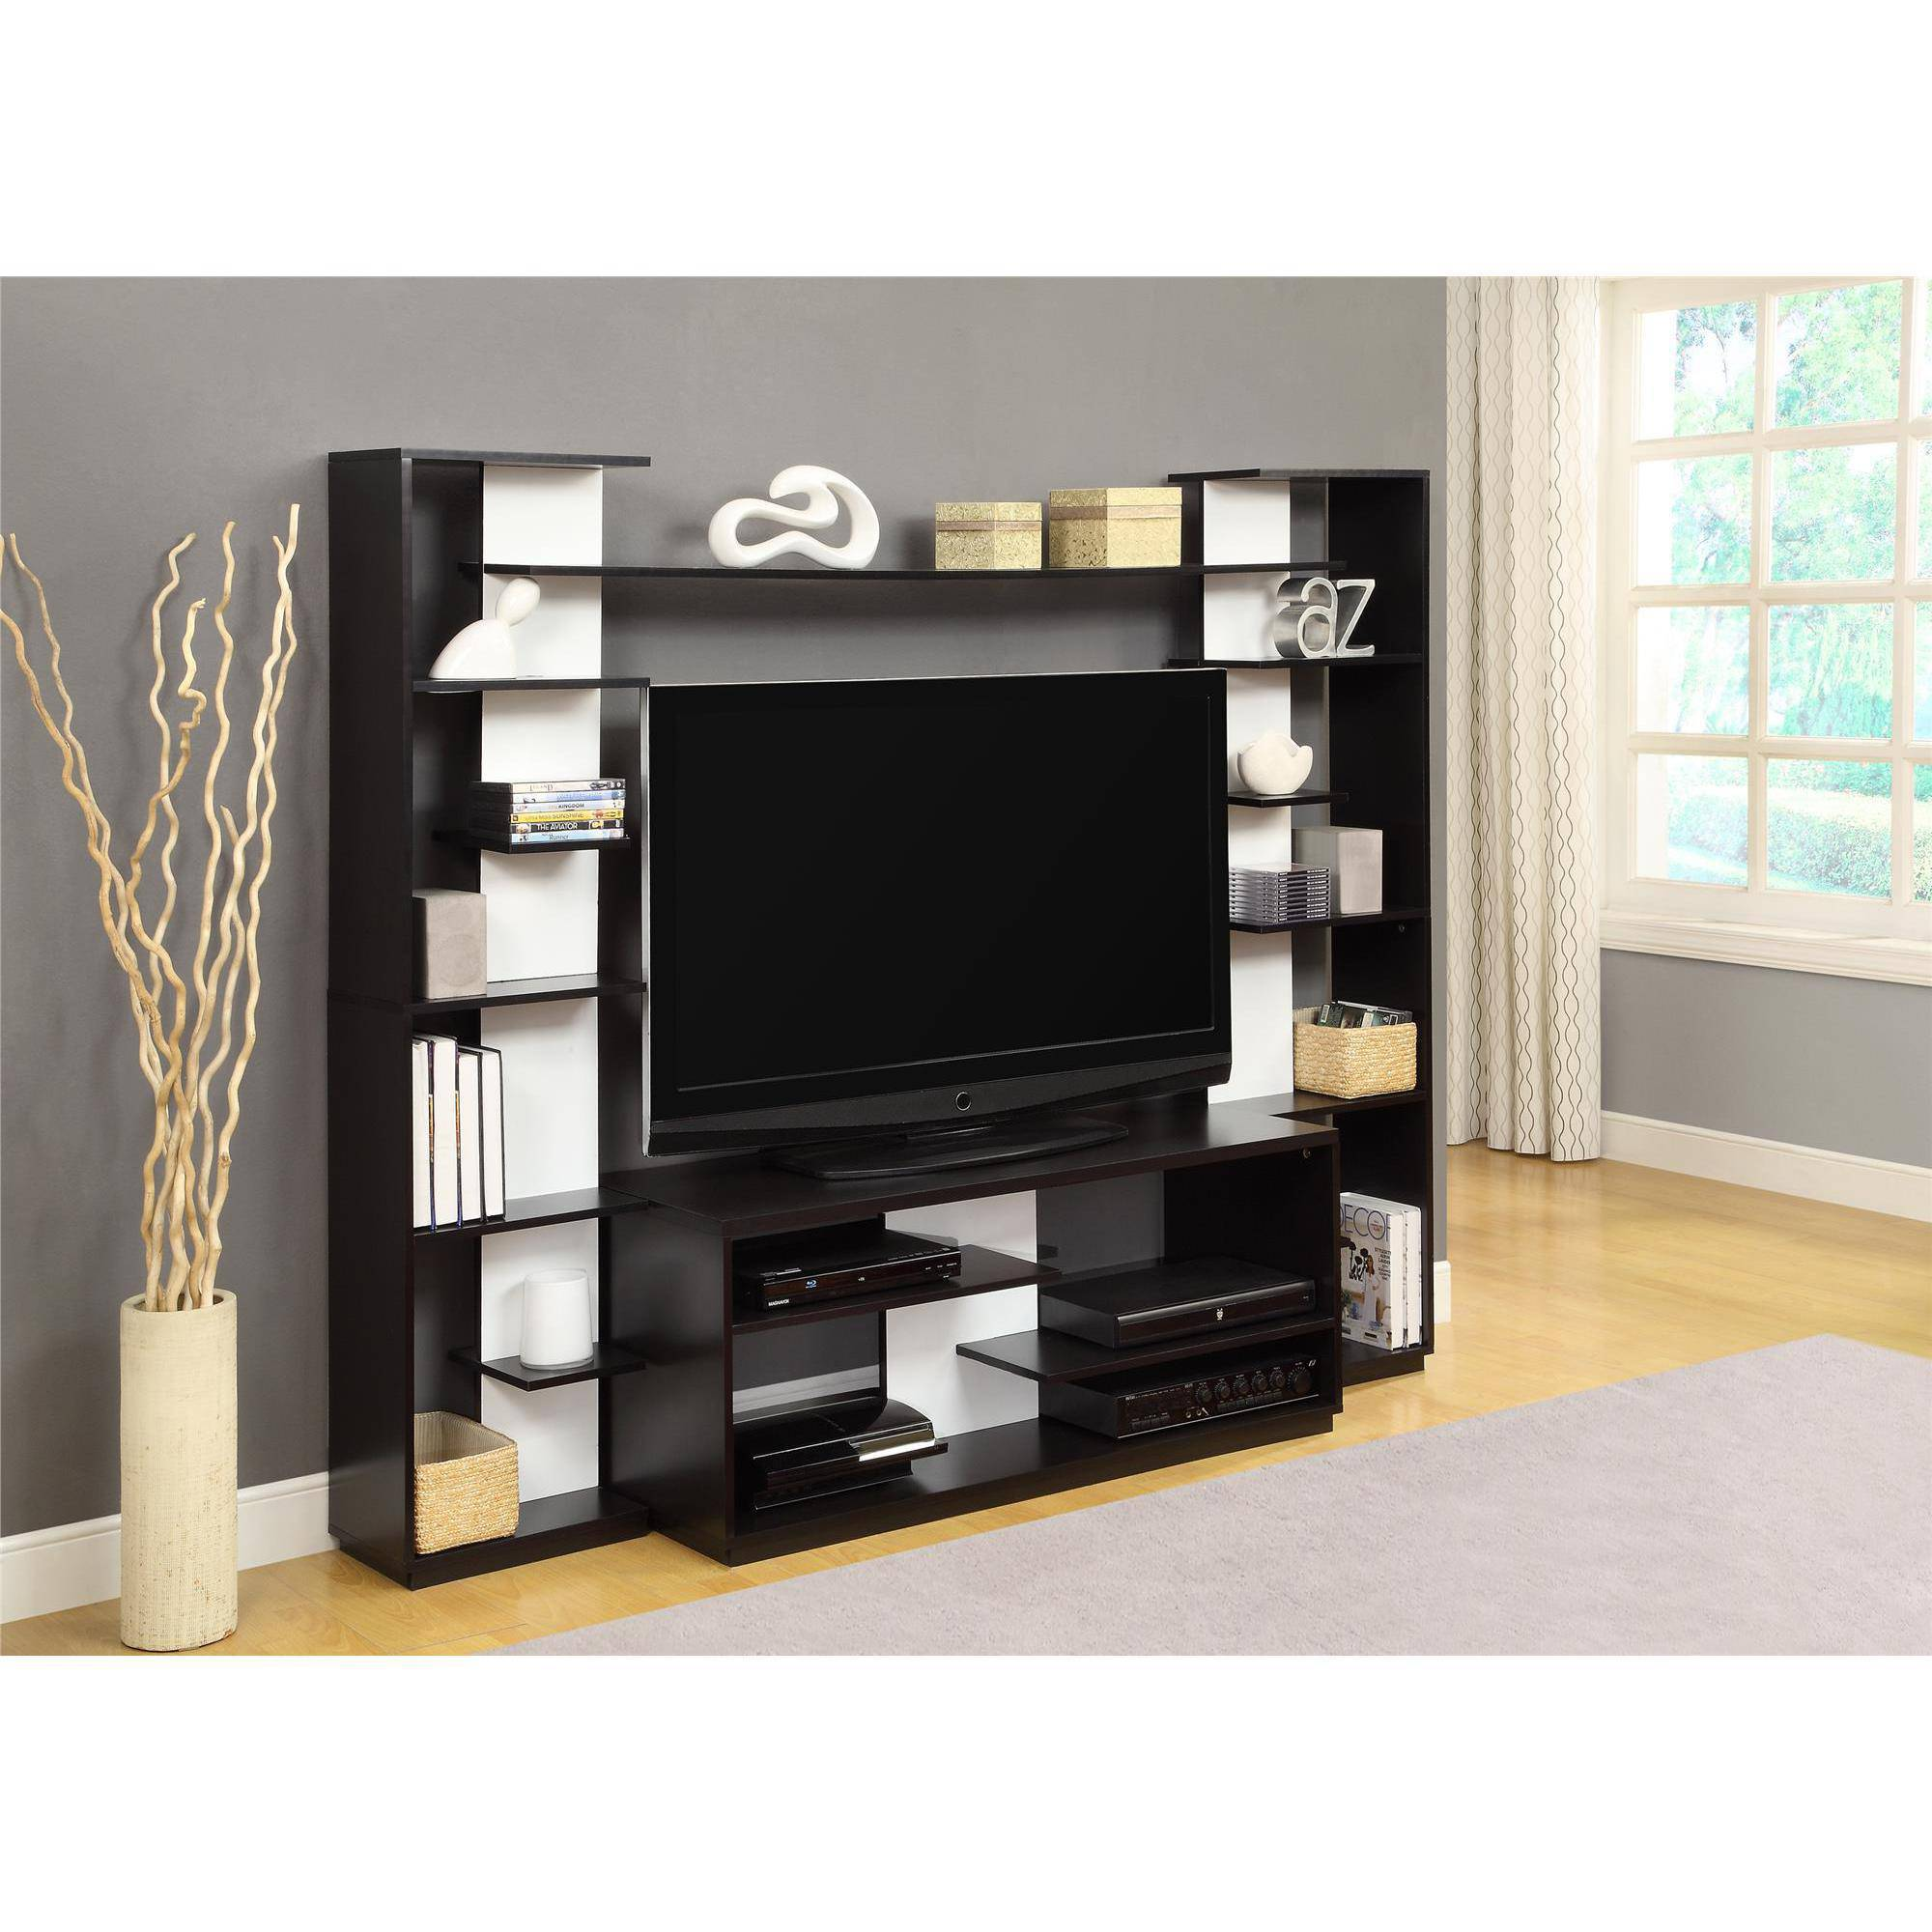 "Click here to buy Altra Black and White Home Entertainment Center with Two Reversible Back Panels for TVs up to 45"" by Altra."